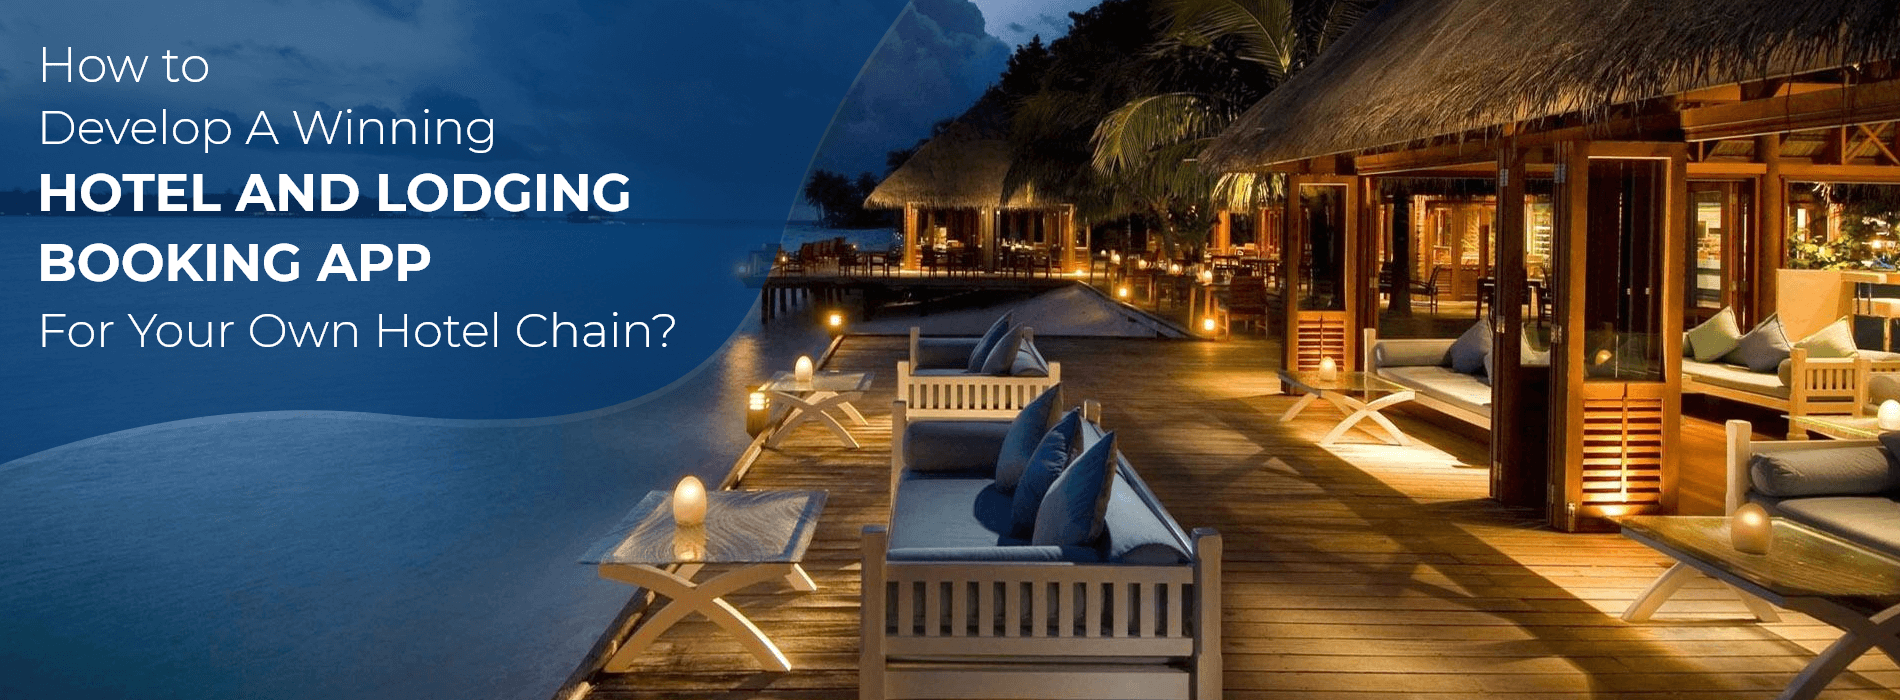 How to Develop a Winning Hotel and Lodging Booking App?